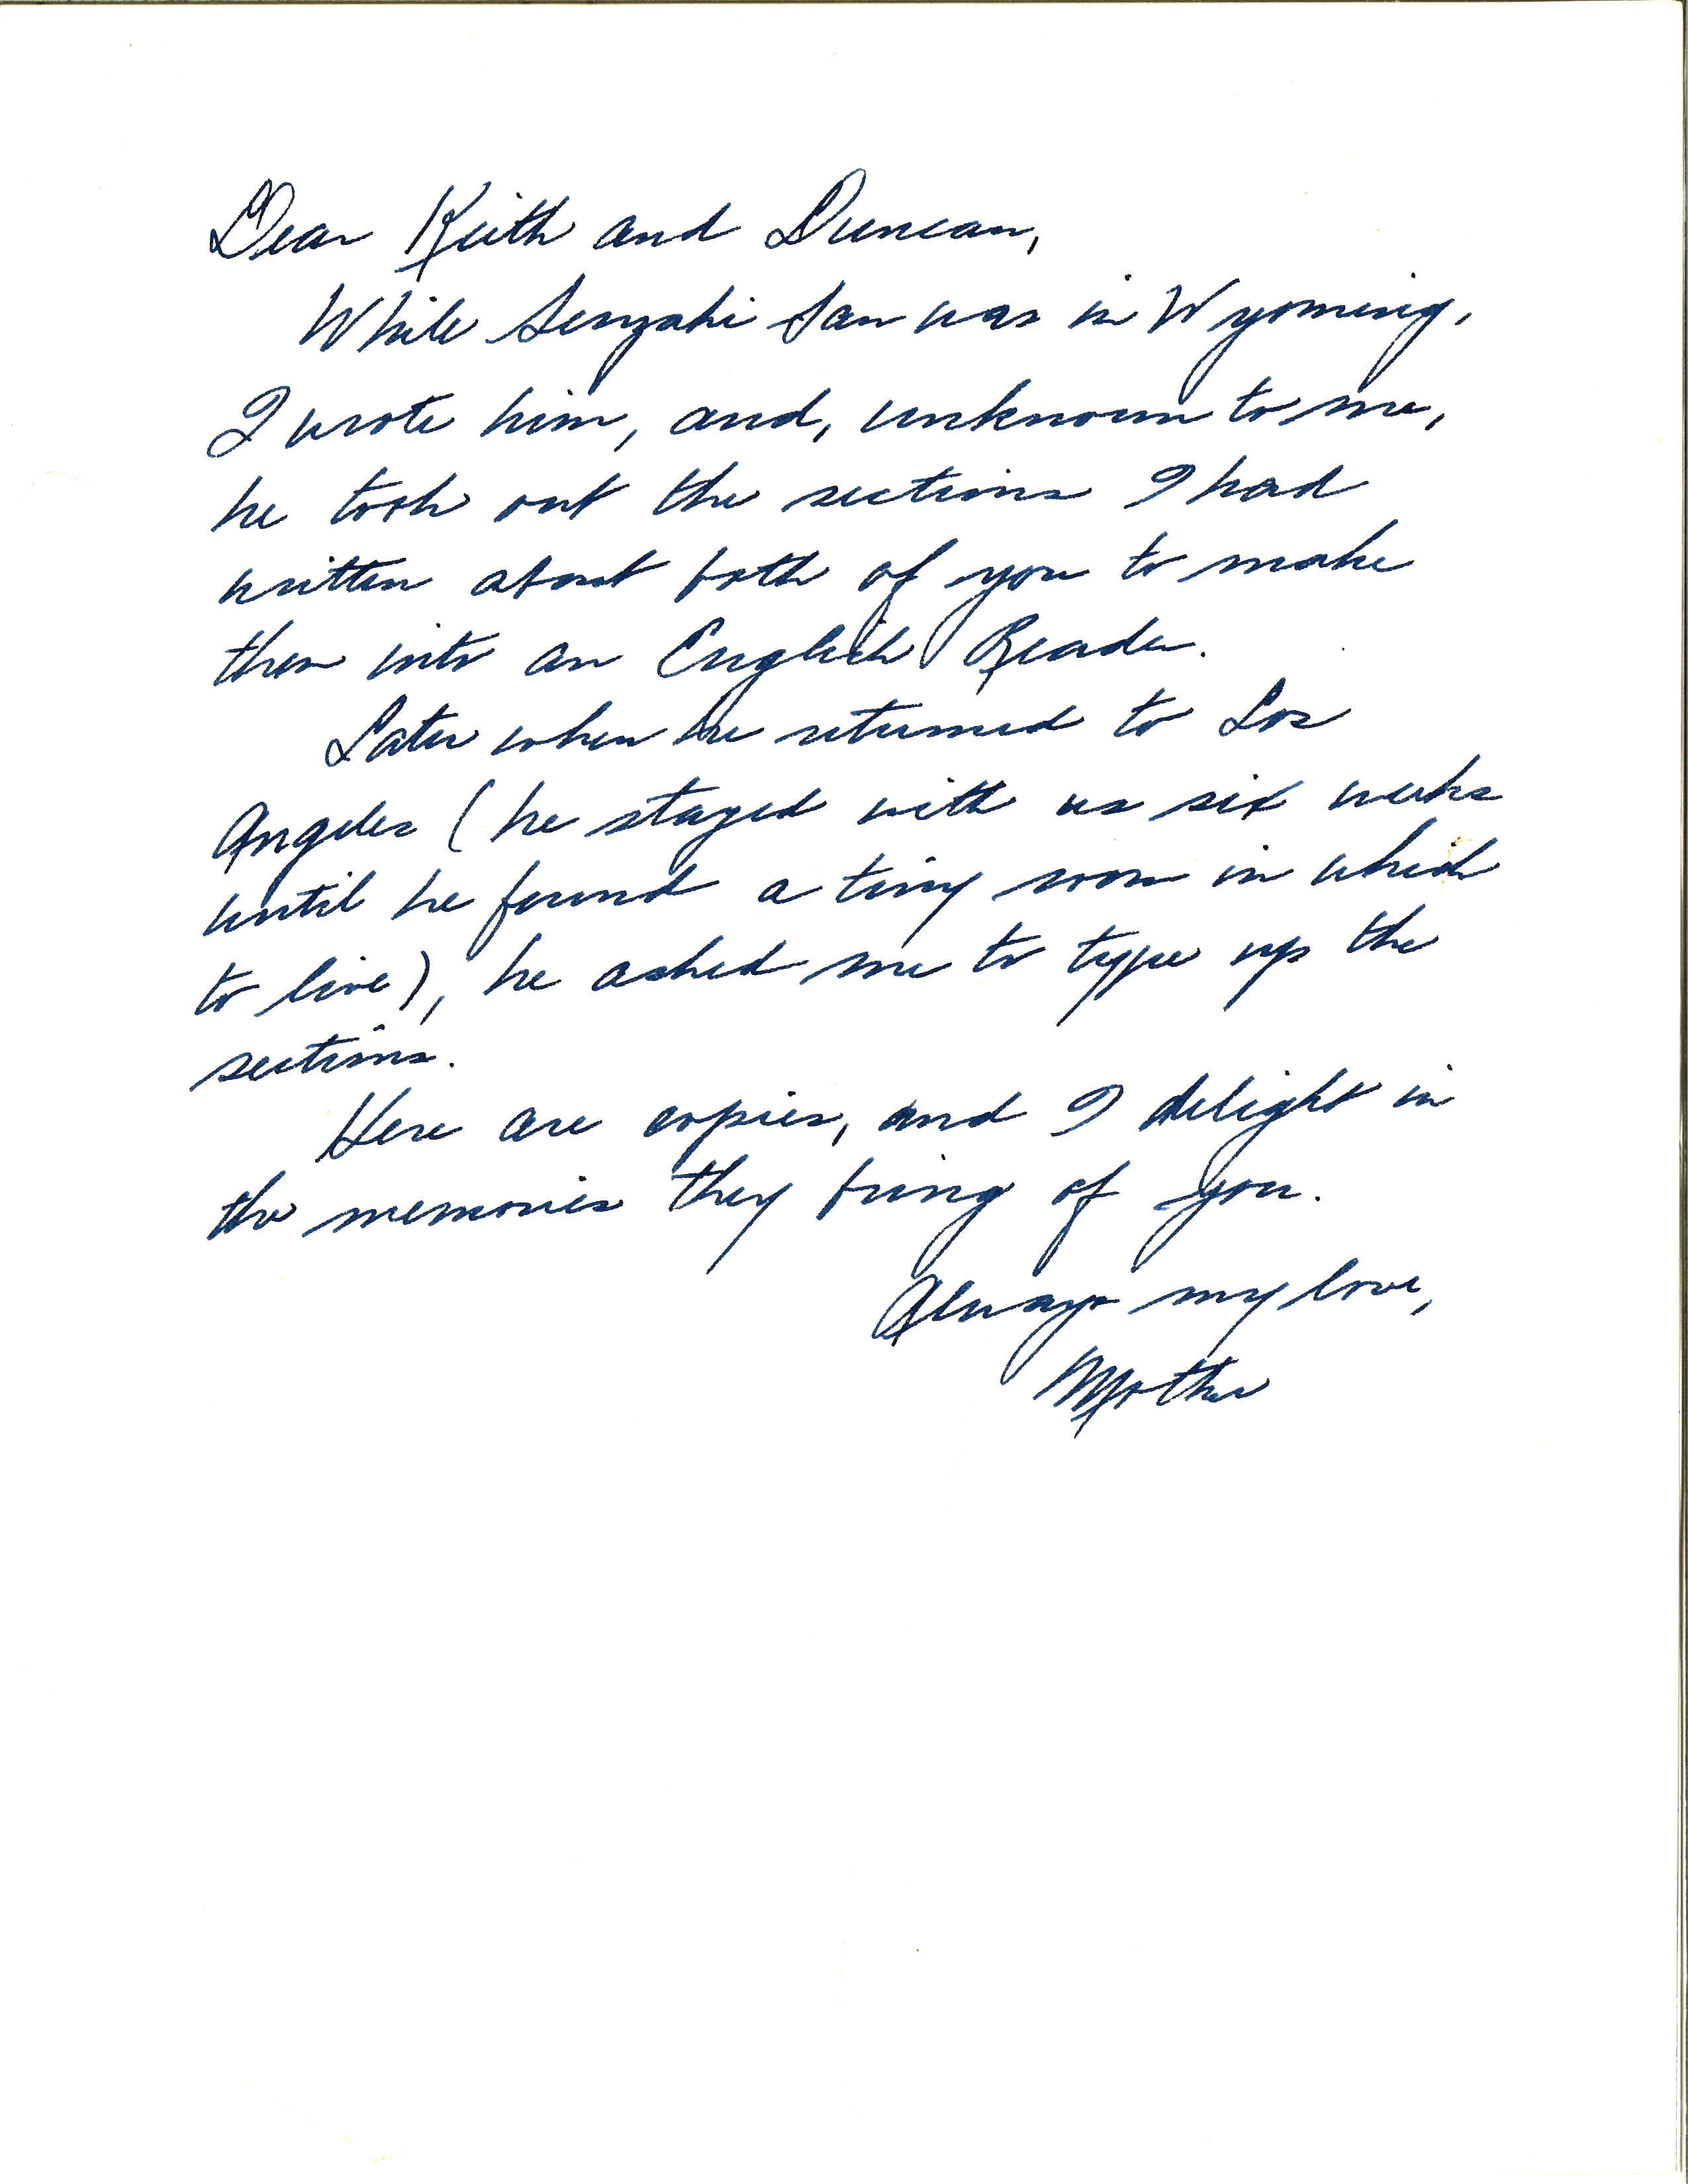 McCandles letter to her sons